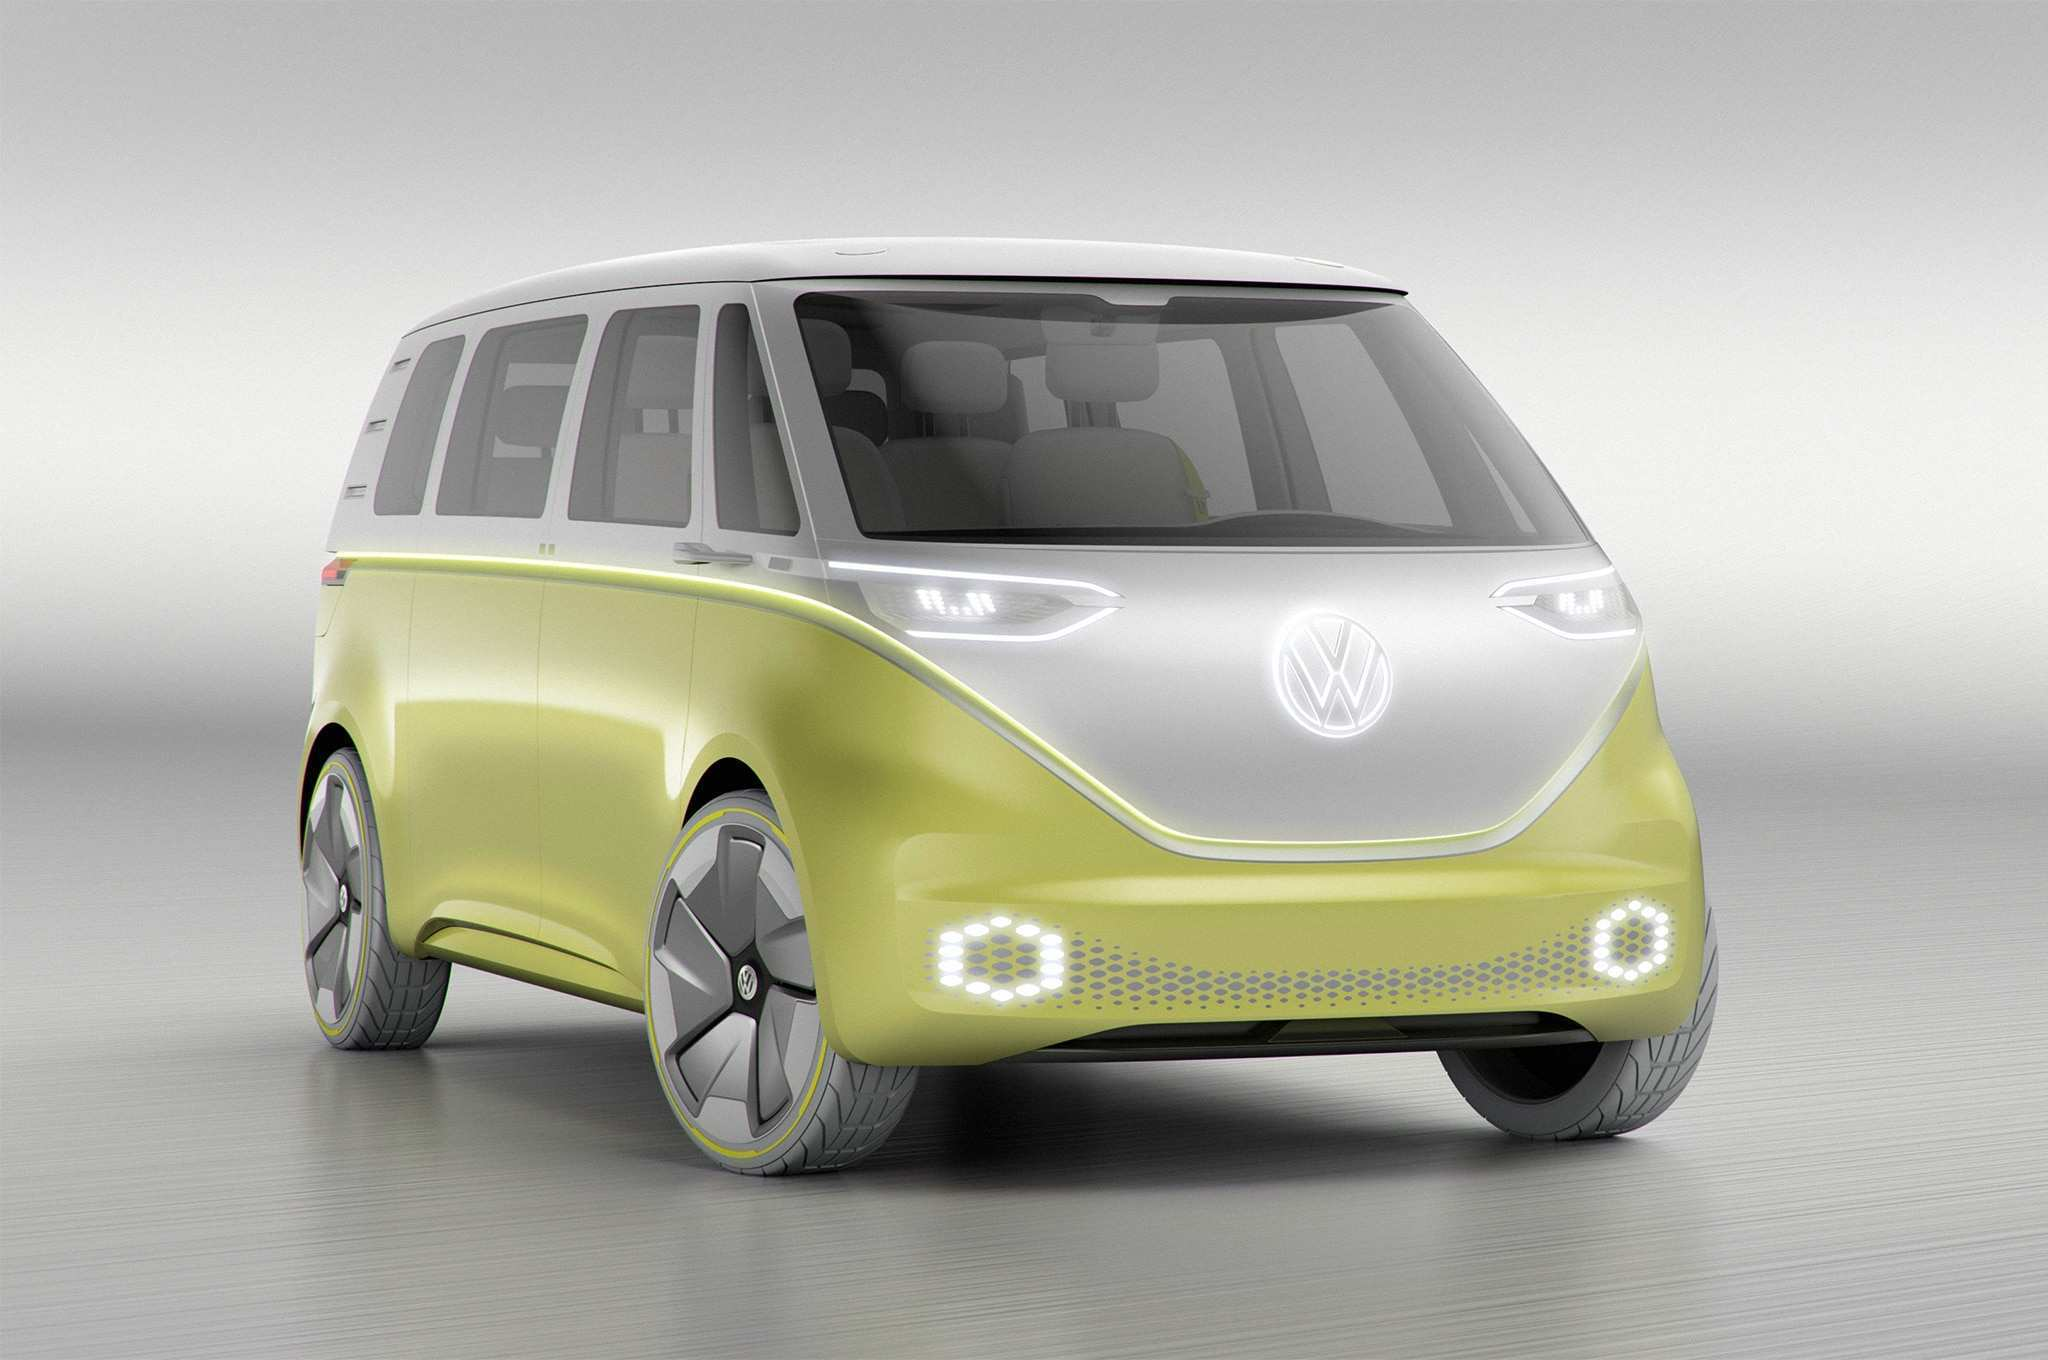 56 New Volkswagen Eurovan 2020 Exterior And Interior